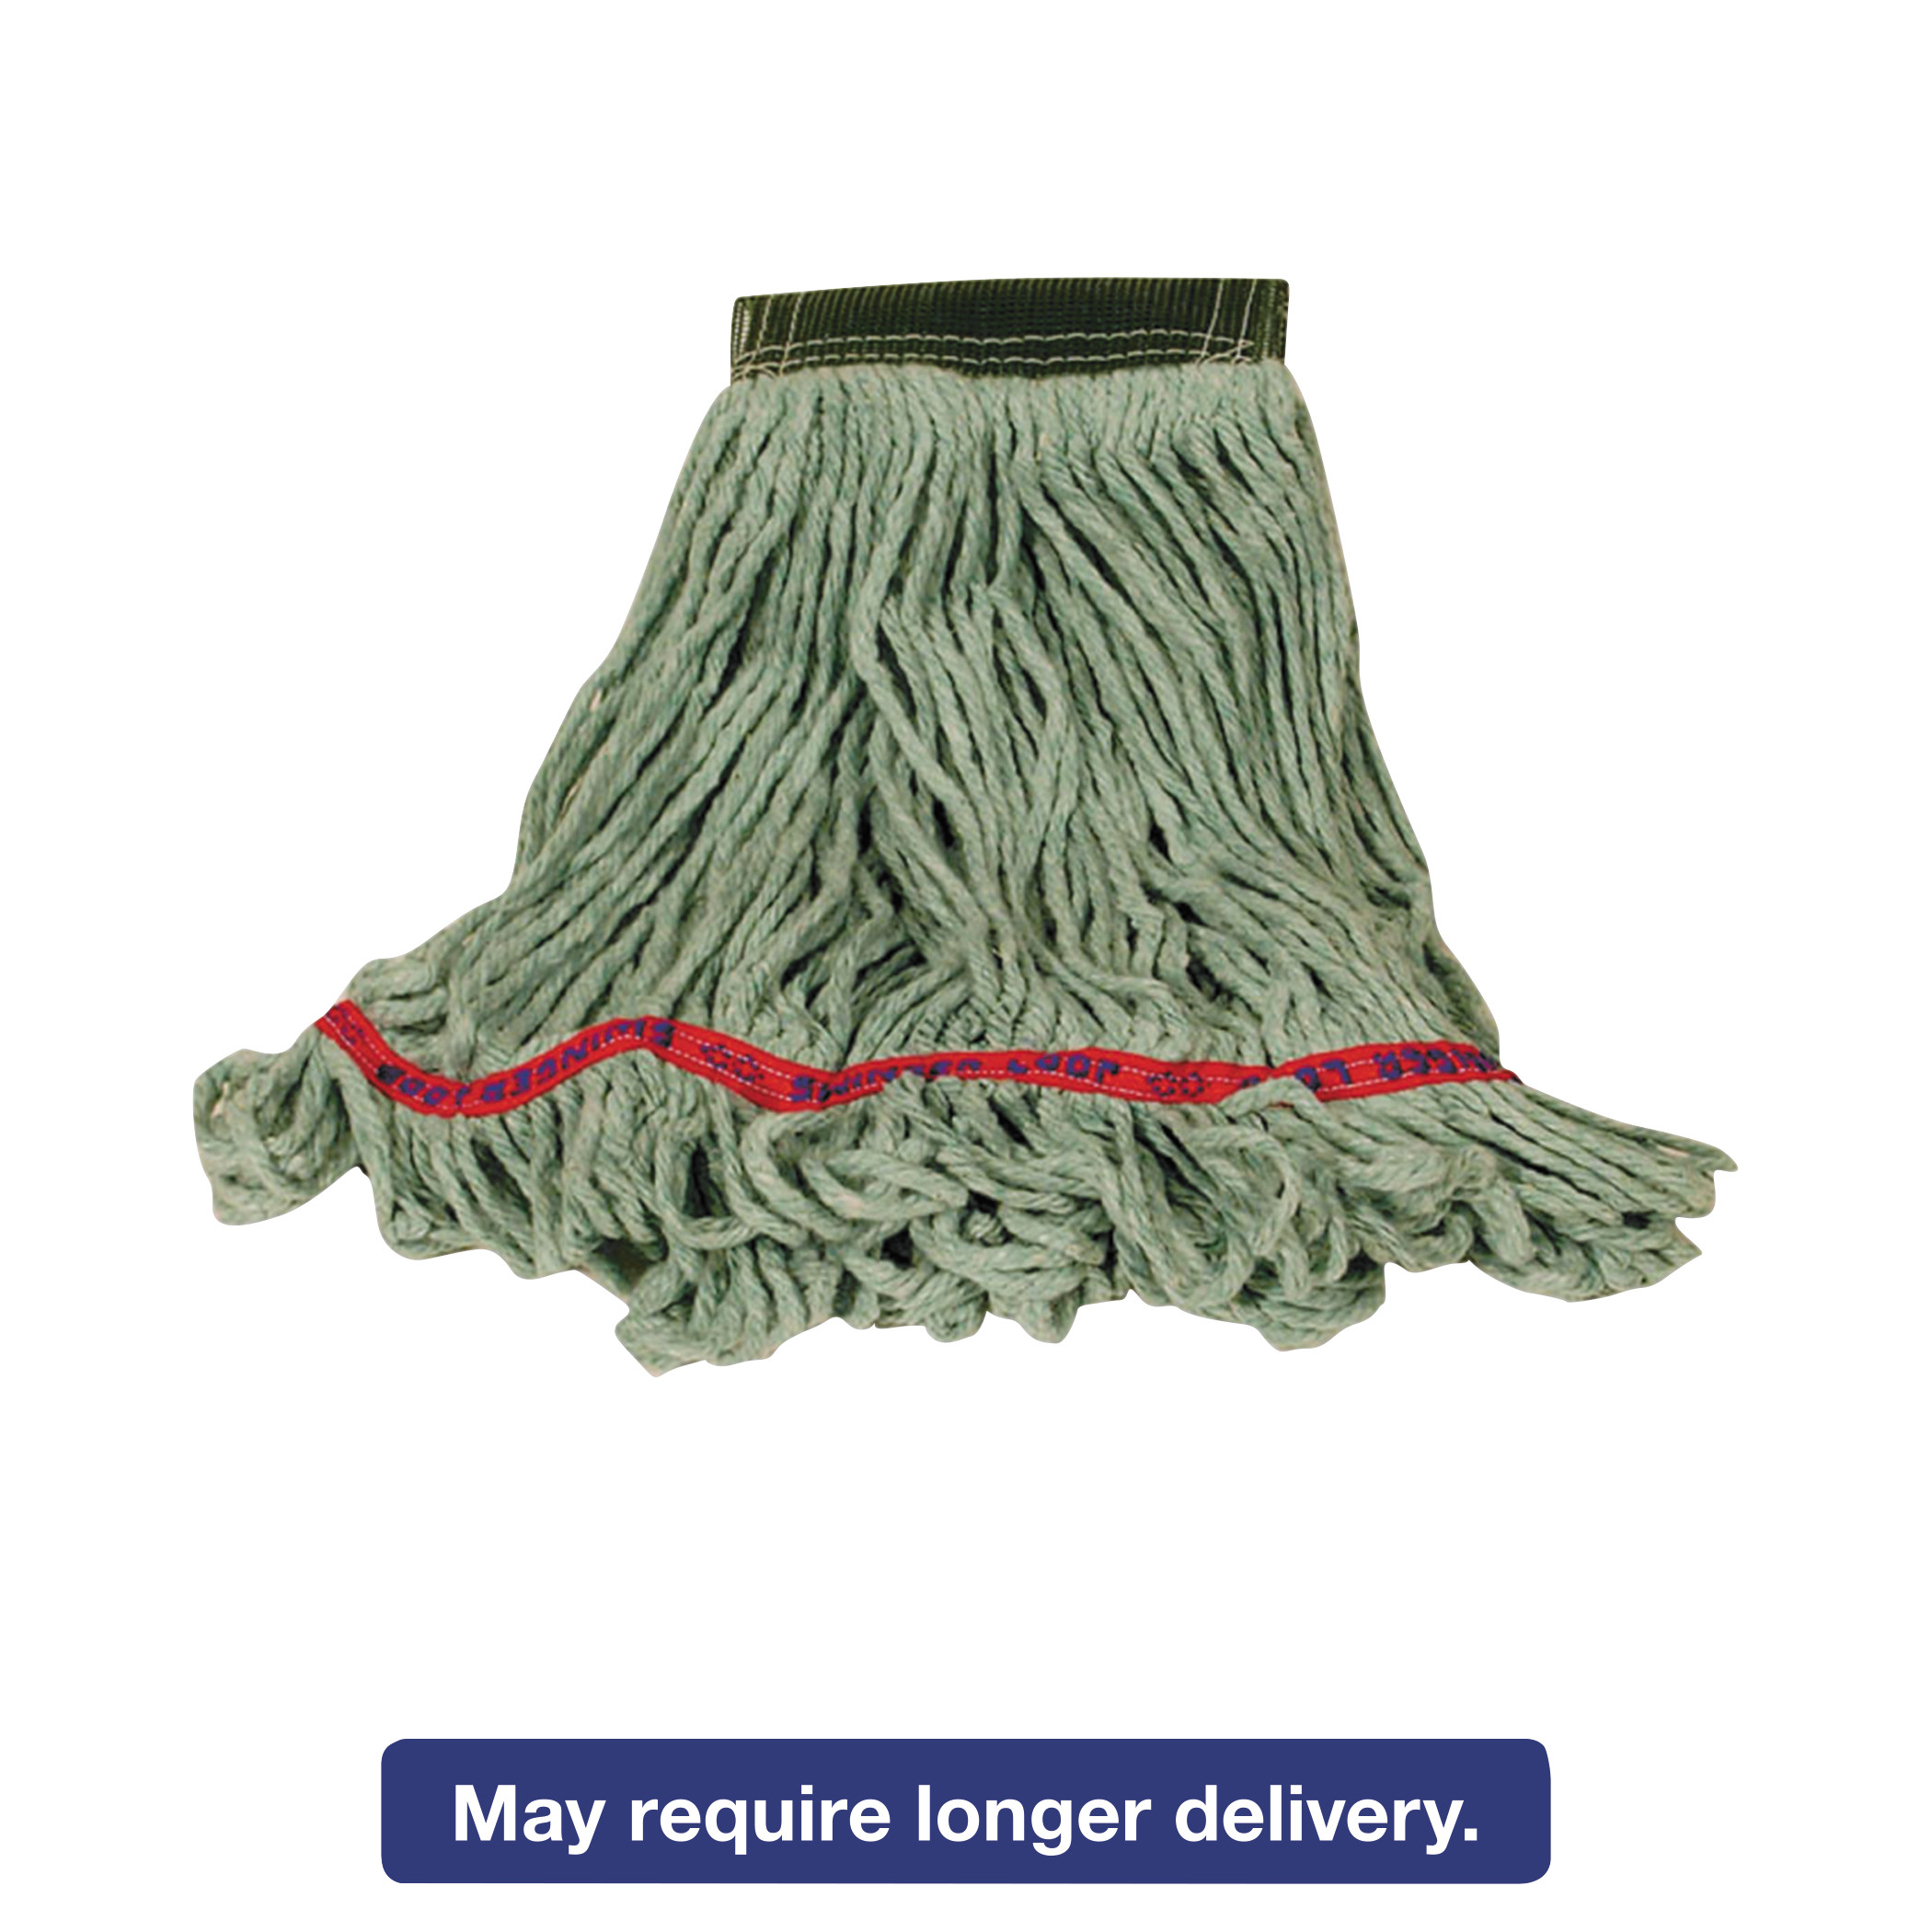 Rubbermaid Commercial Swinger Loop Wet Mop Heads, Cotton/Synthetic Blend, Green, Large, 6/Carton